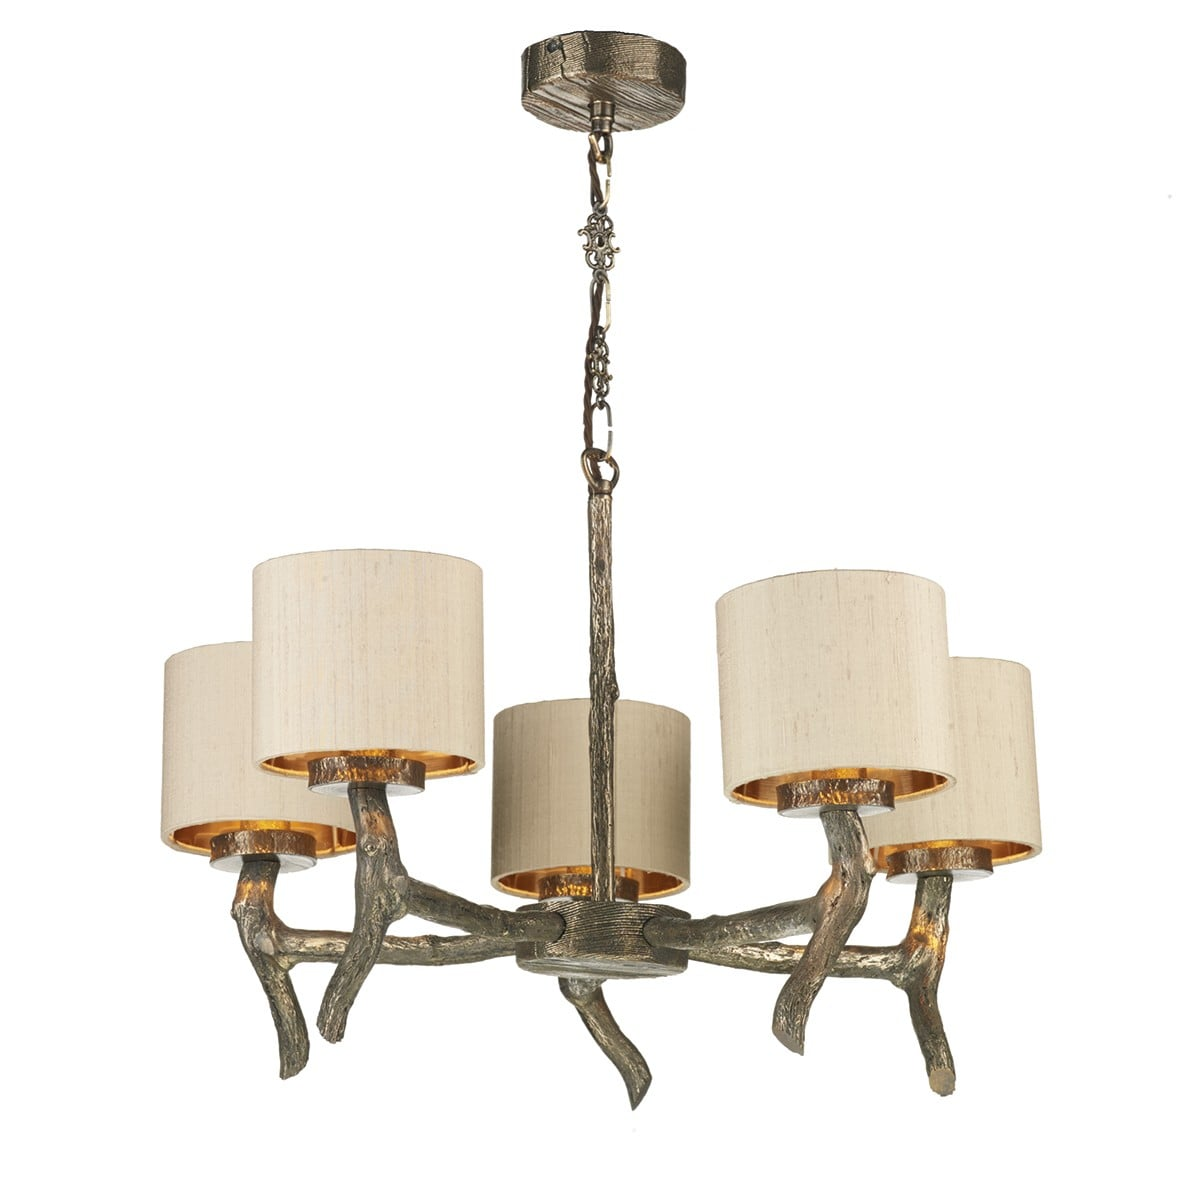 David Hunt Lighting JOS0501 Joshua 5 Light Dual Mount Pendant in Bronze withTaupe shades